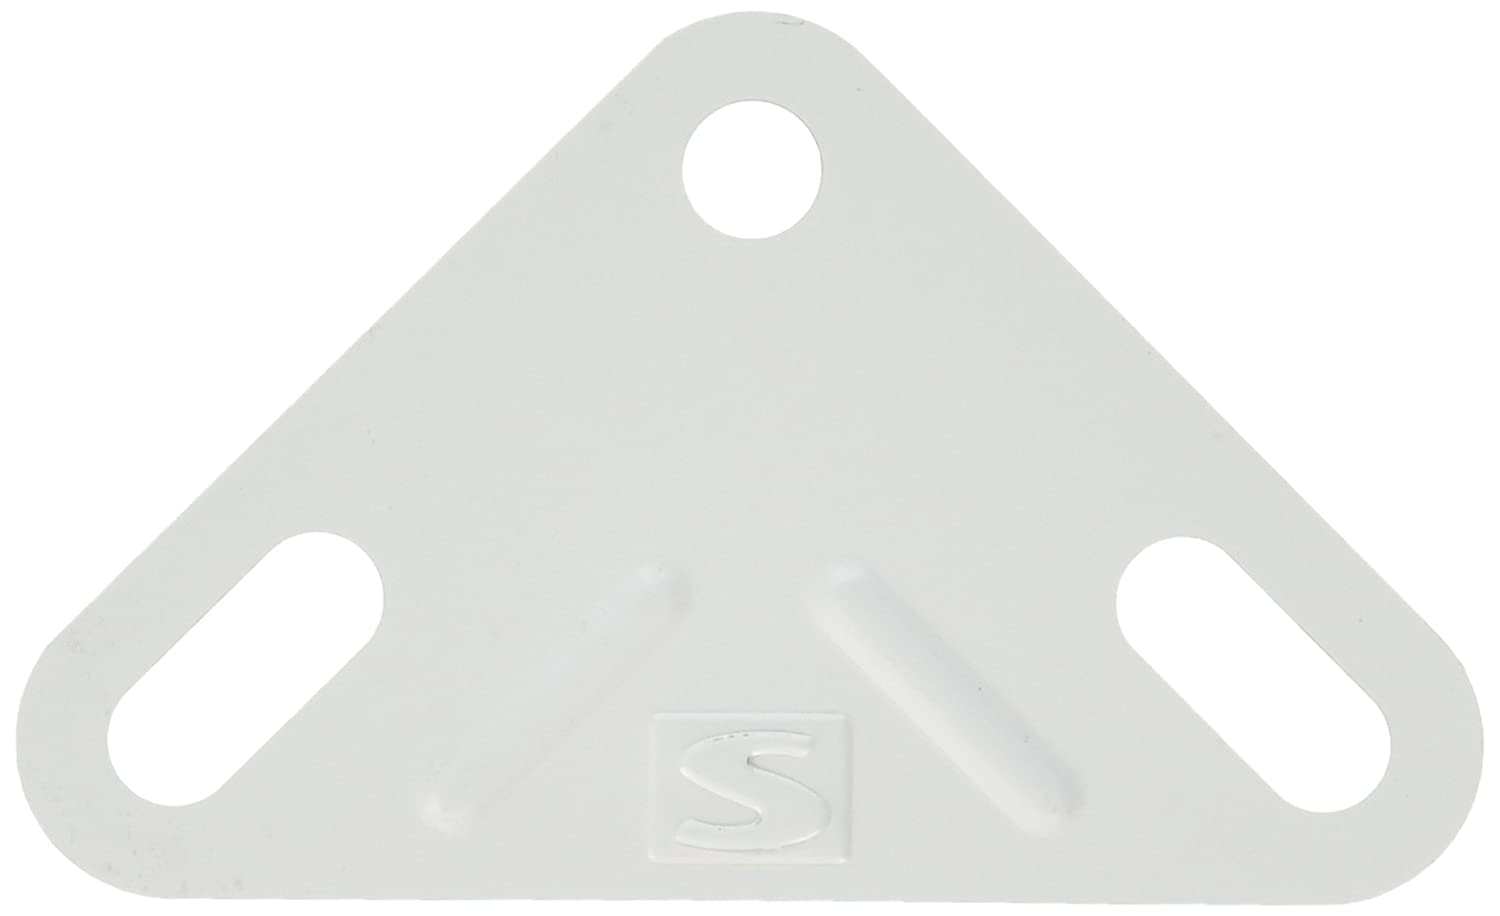 Simonrack 8425437040399 135 x 90 x 56 mm Corner Plates - White (Box of 100)